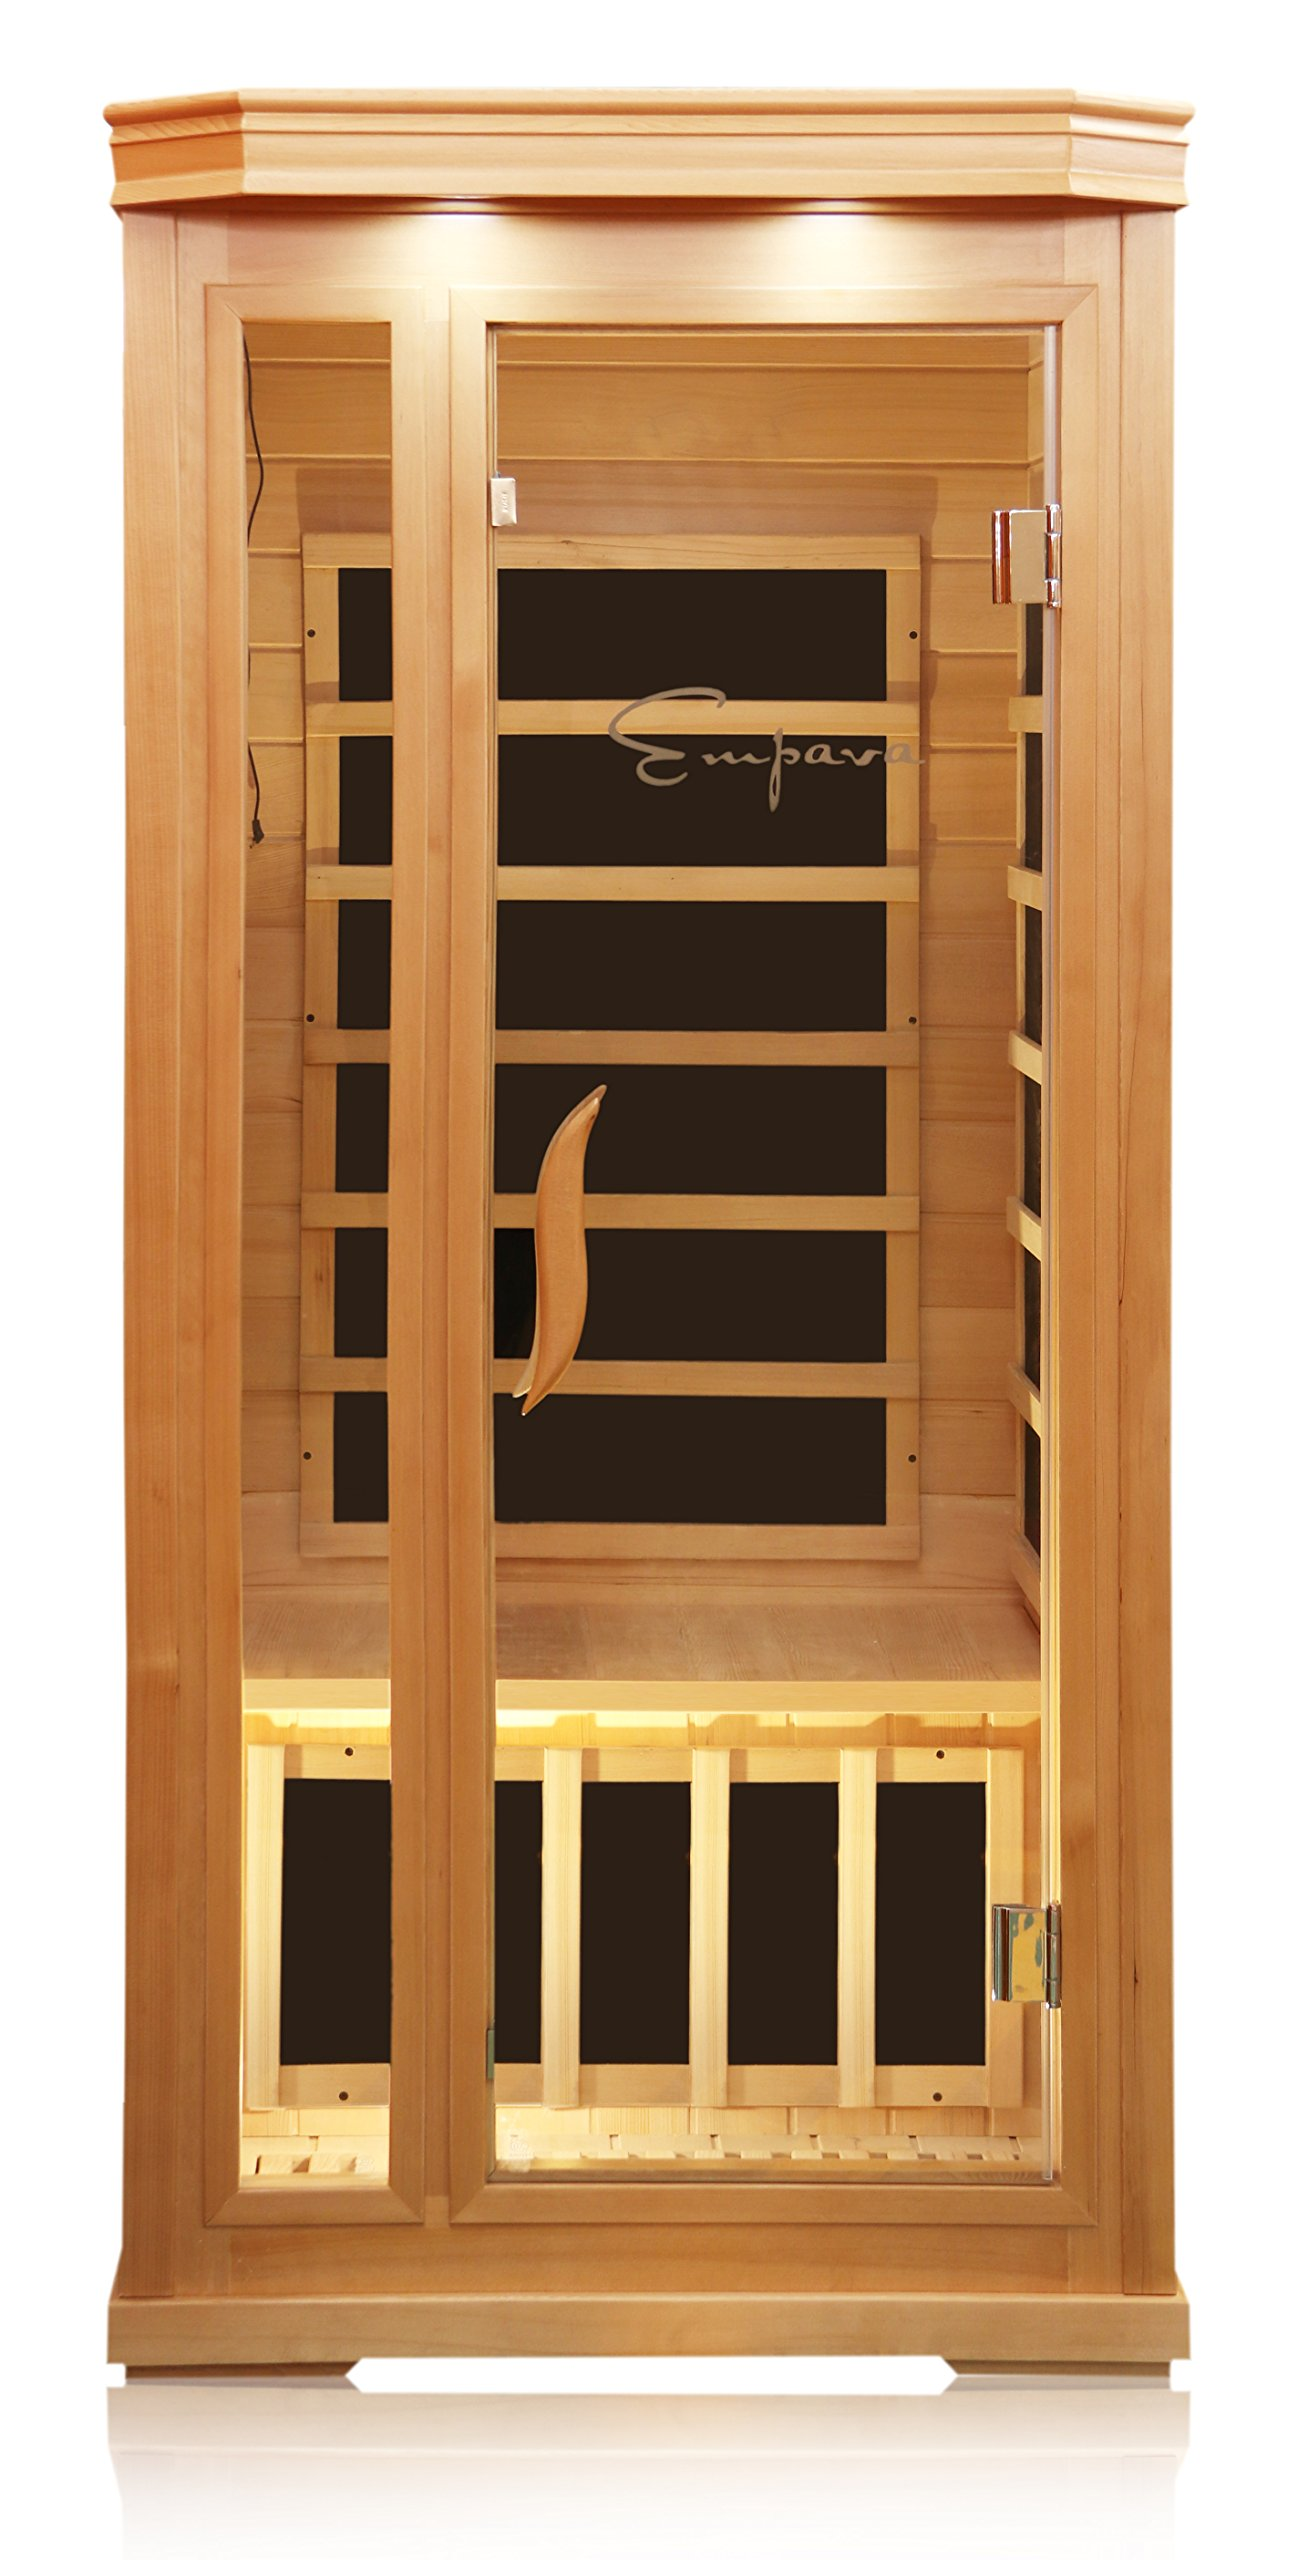 Empava 1-2 Person Far Infrared Sauna 6 Carbon Fiber Heaters Canadian Hemlock Wood Dry Sauna Room EMPV-SR-T1